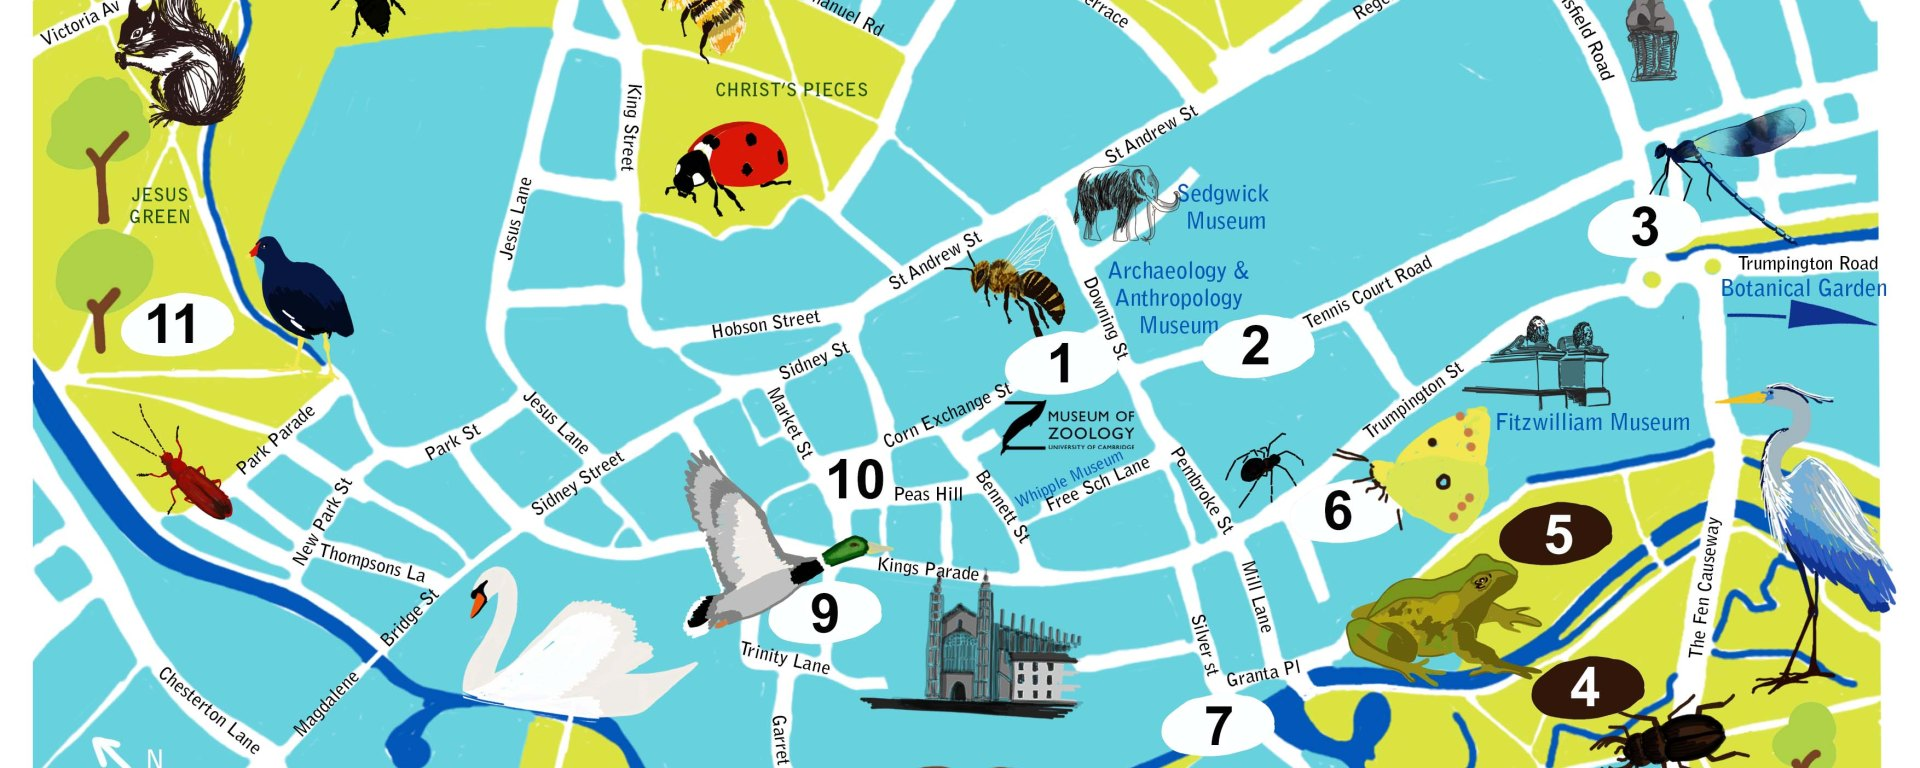 map of Cambridge city with 'spots' showing where to discover wildlife. Illustrations of animals sit on top of map